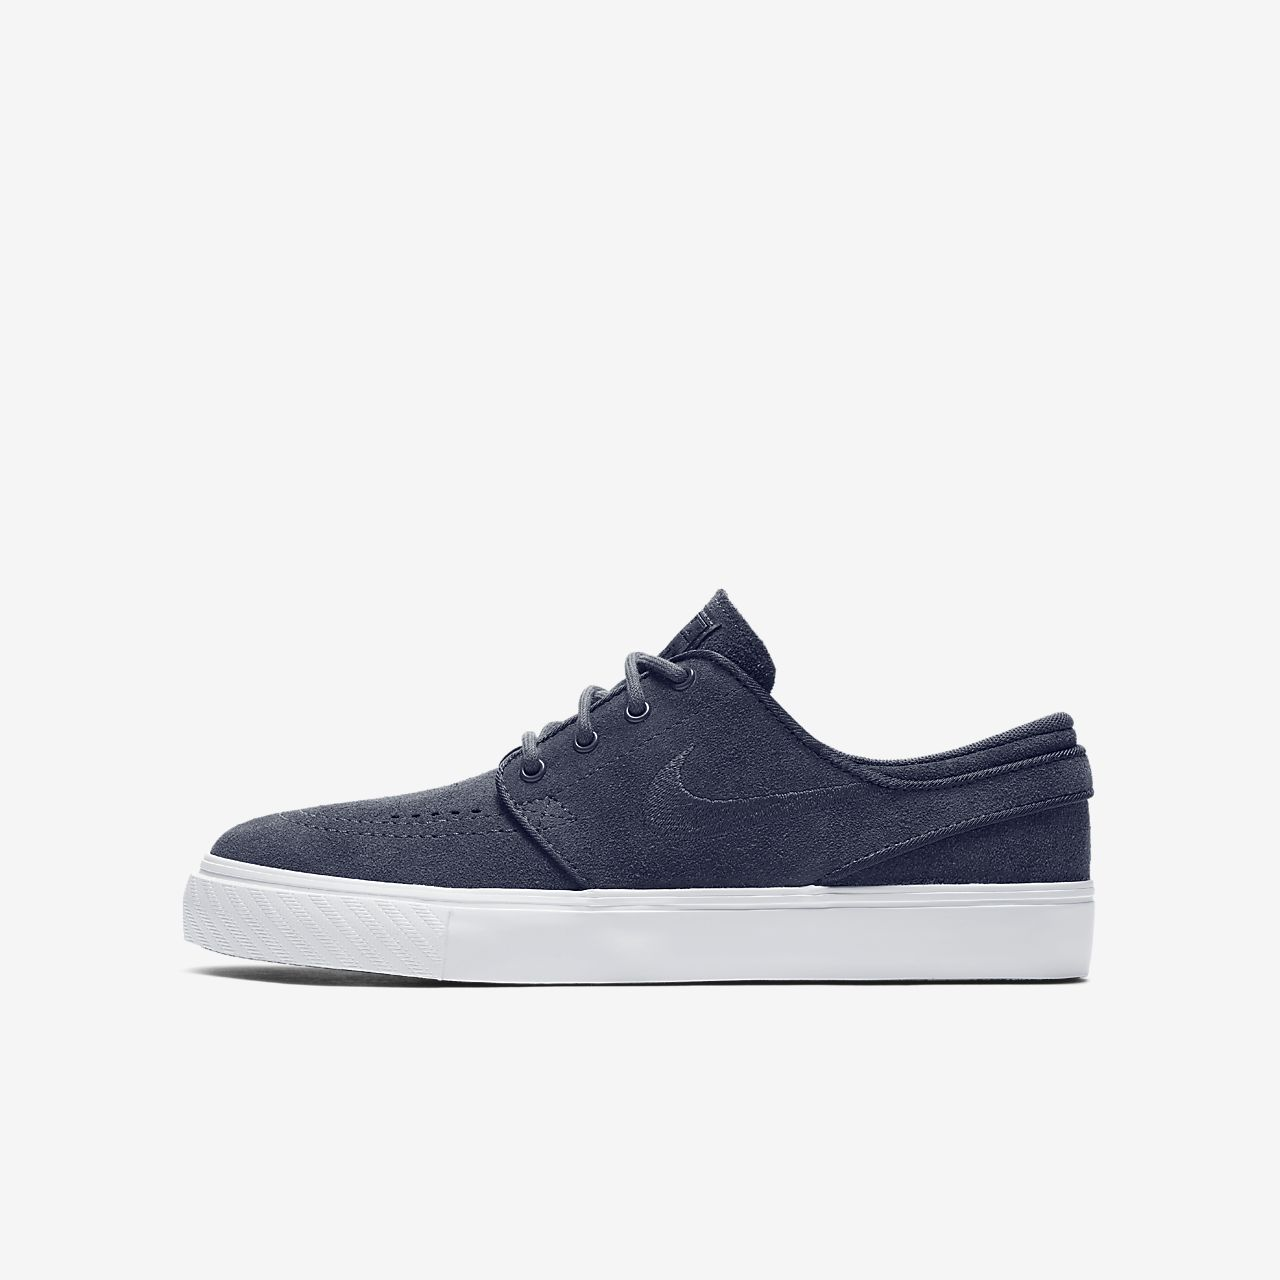 Nike SB Zoom Stefan Janoski Girls Skateboarding Shoes Black/Brown/White xA4532E